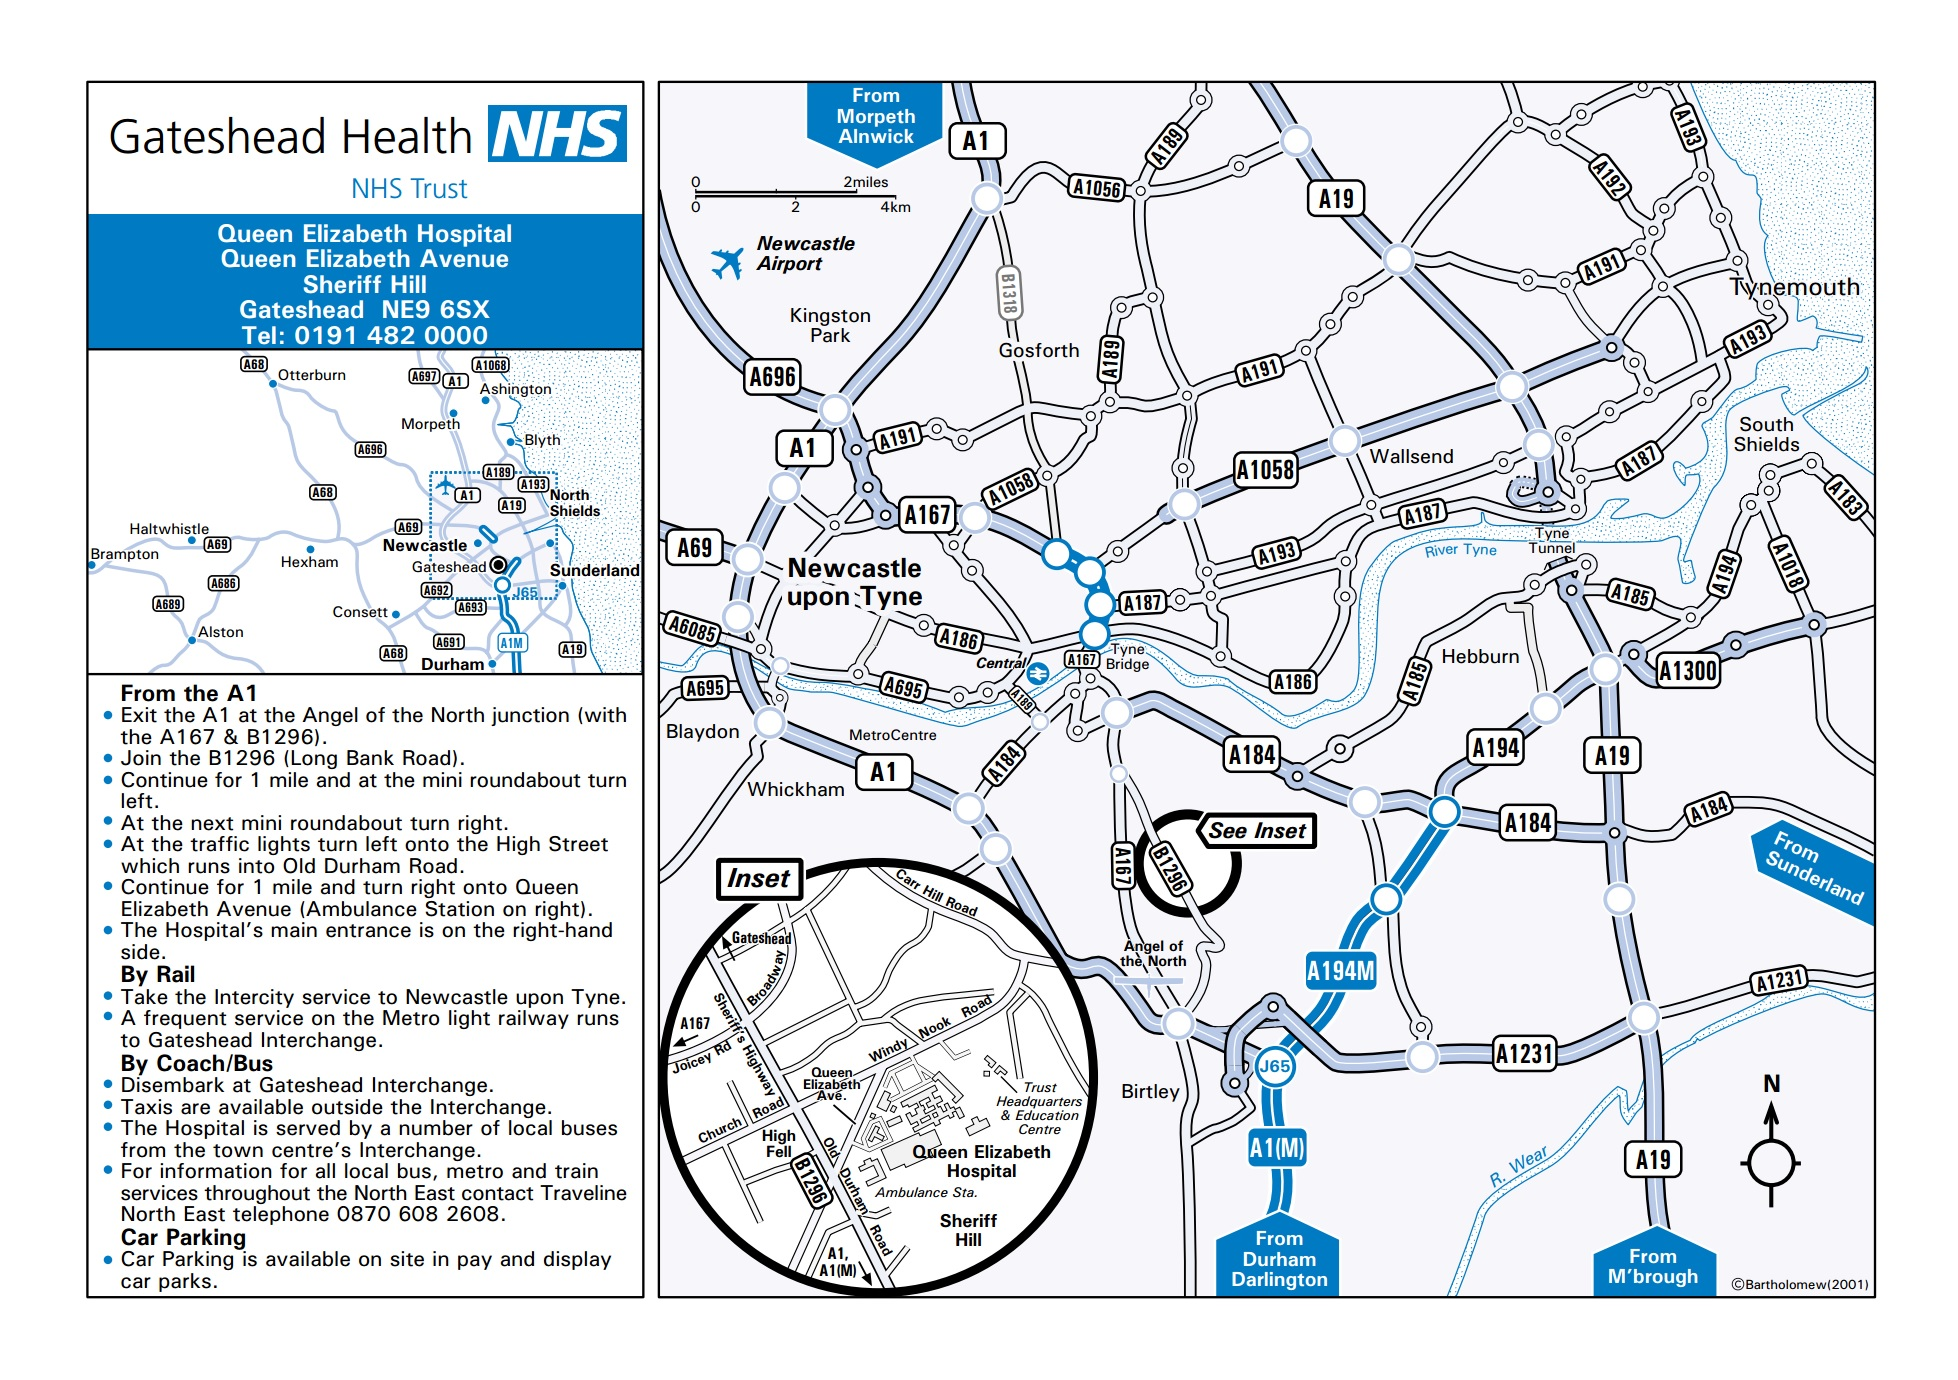 NHS Queen Elizabeth Hospital Gateshead NE9 6SX Driving Map